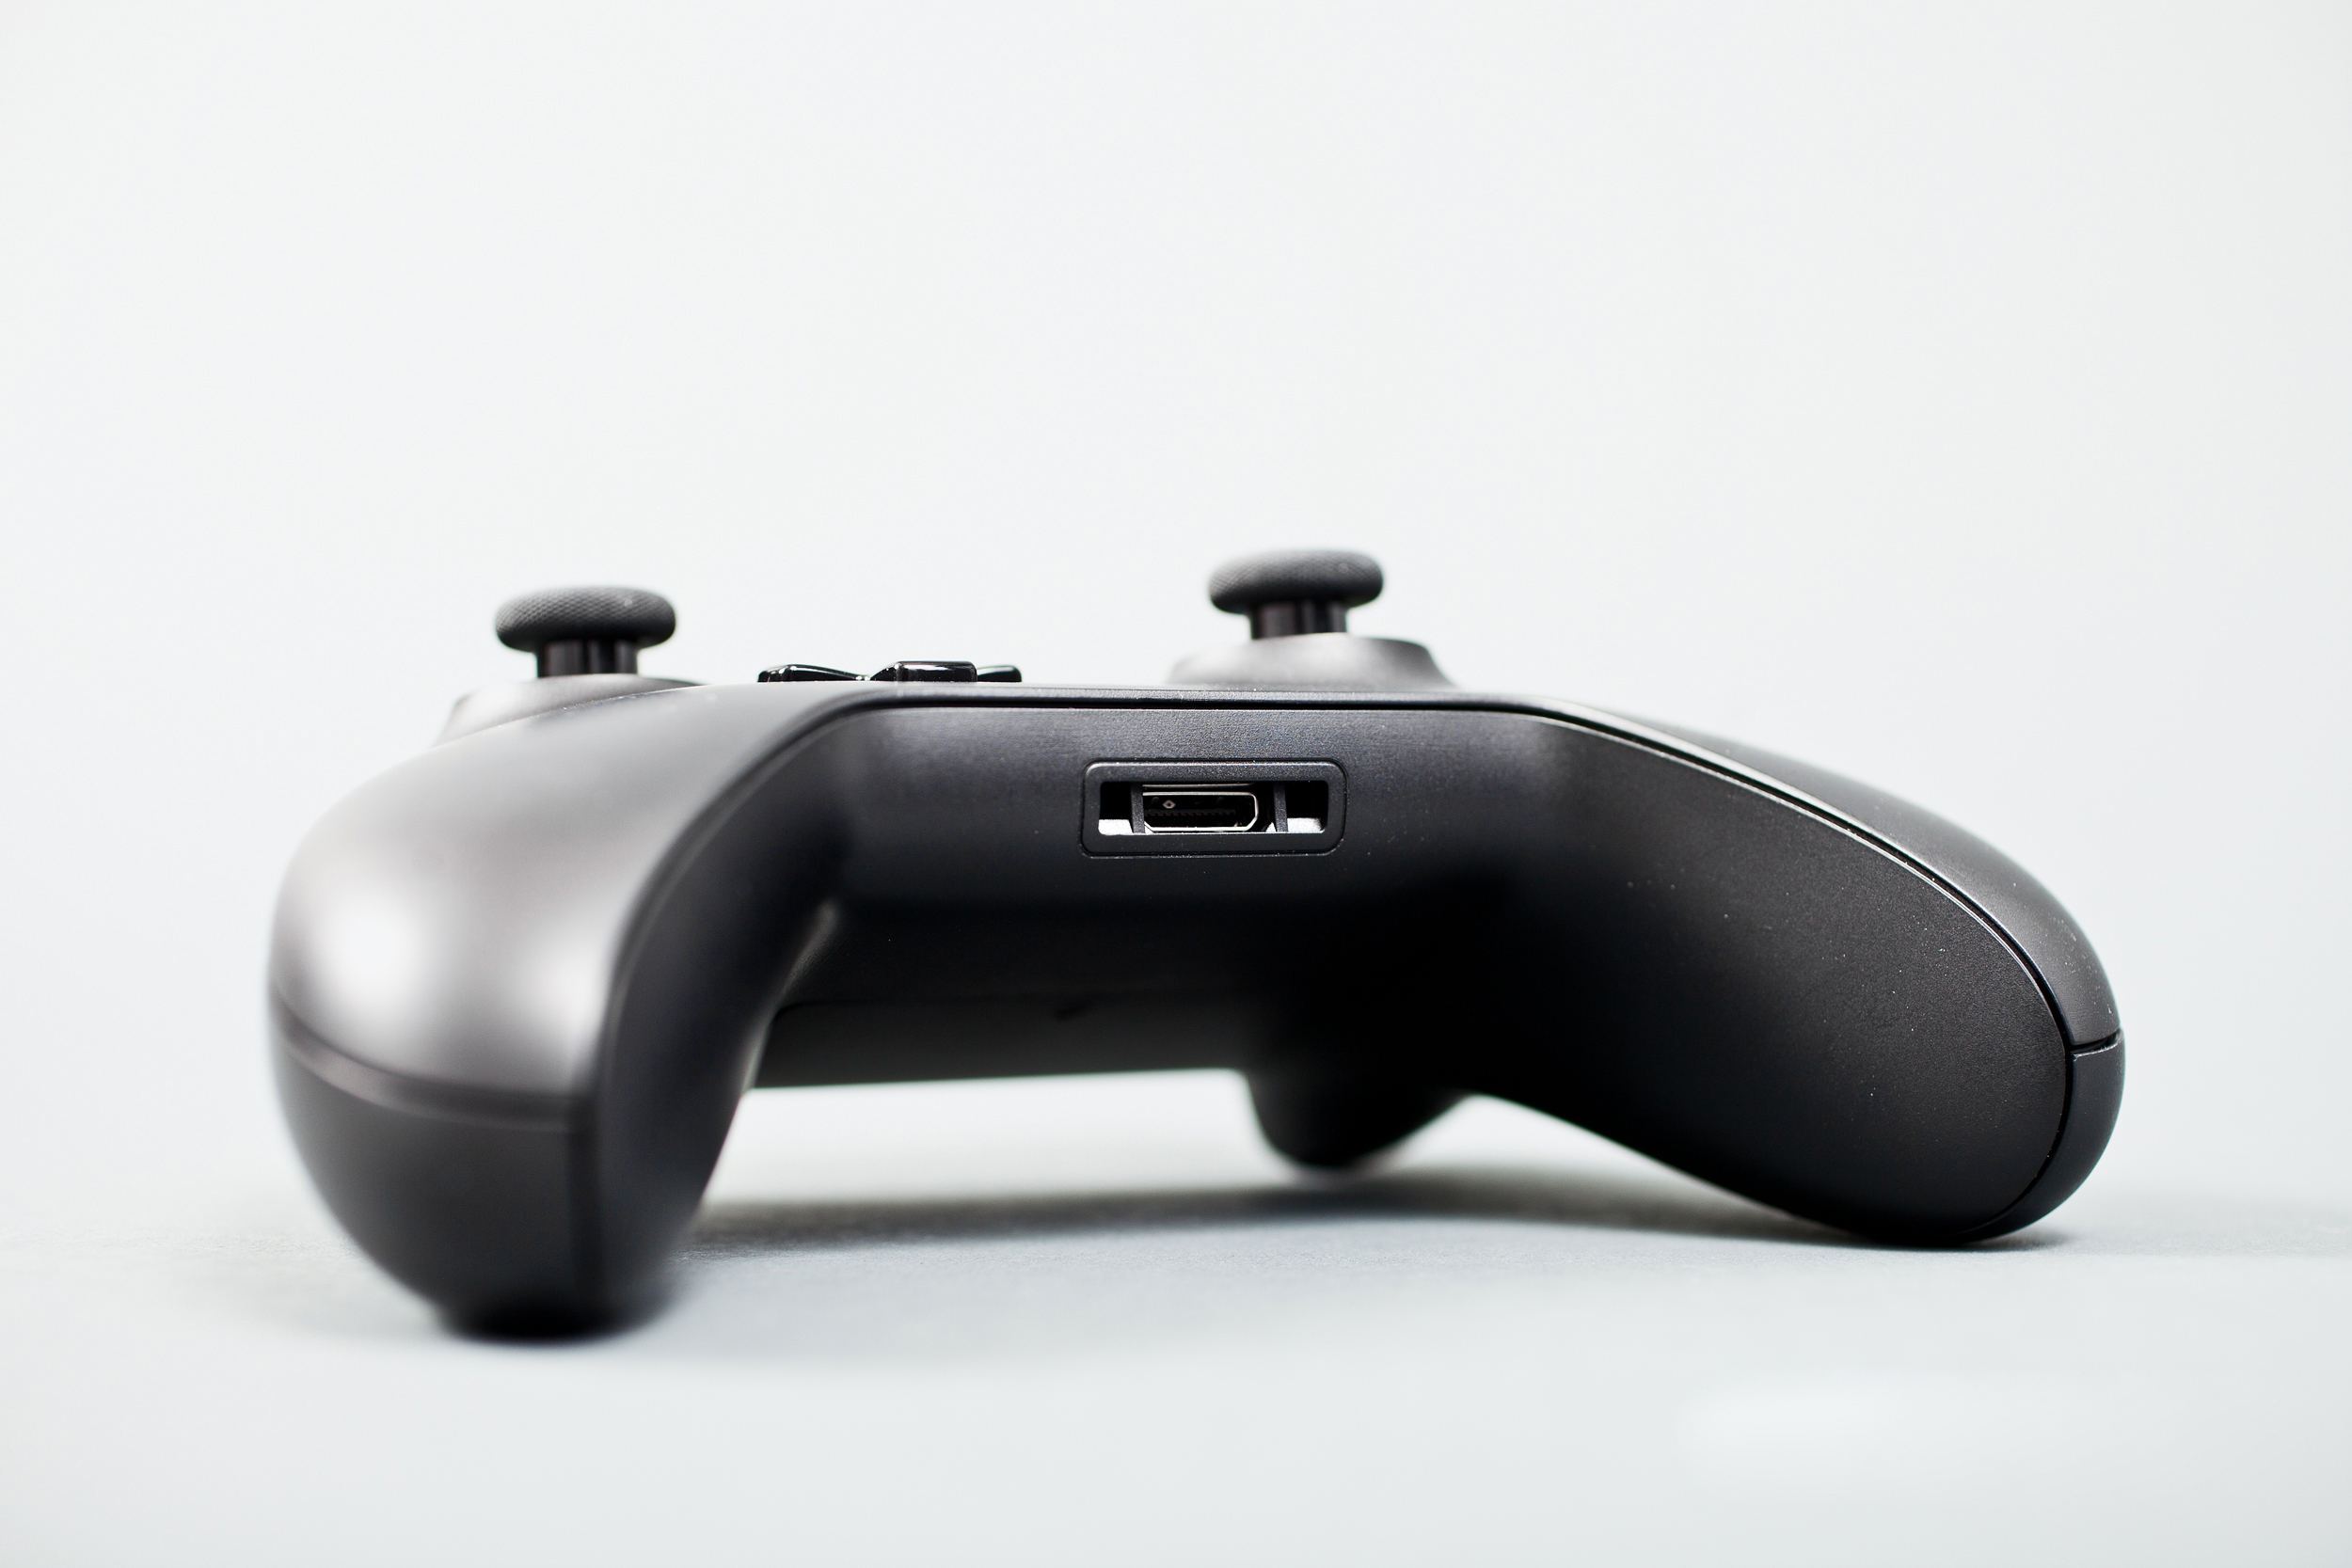 How To Connect Xbox One Controller To Mac Computer